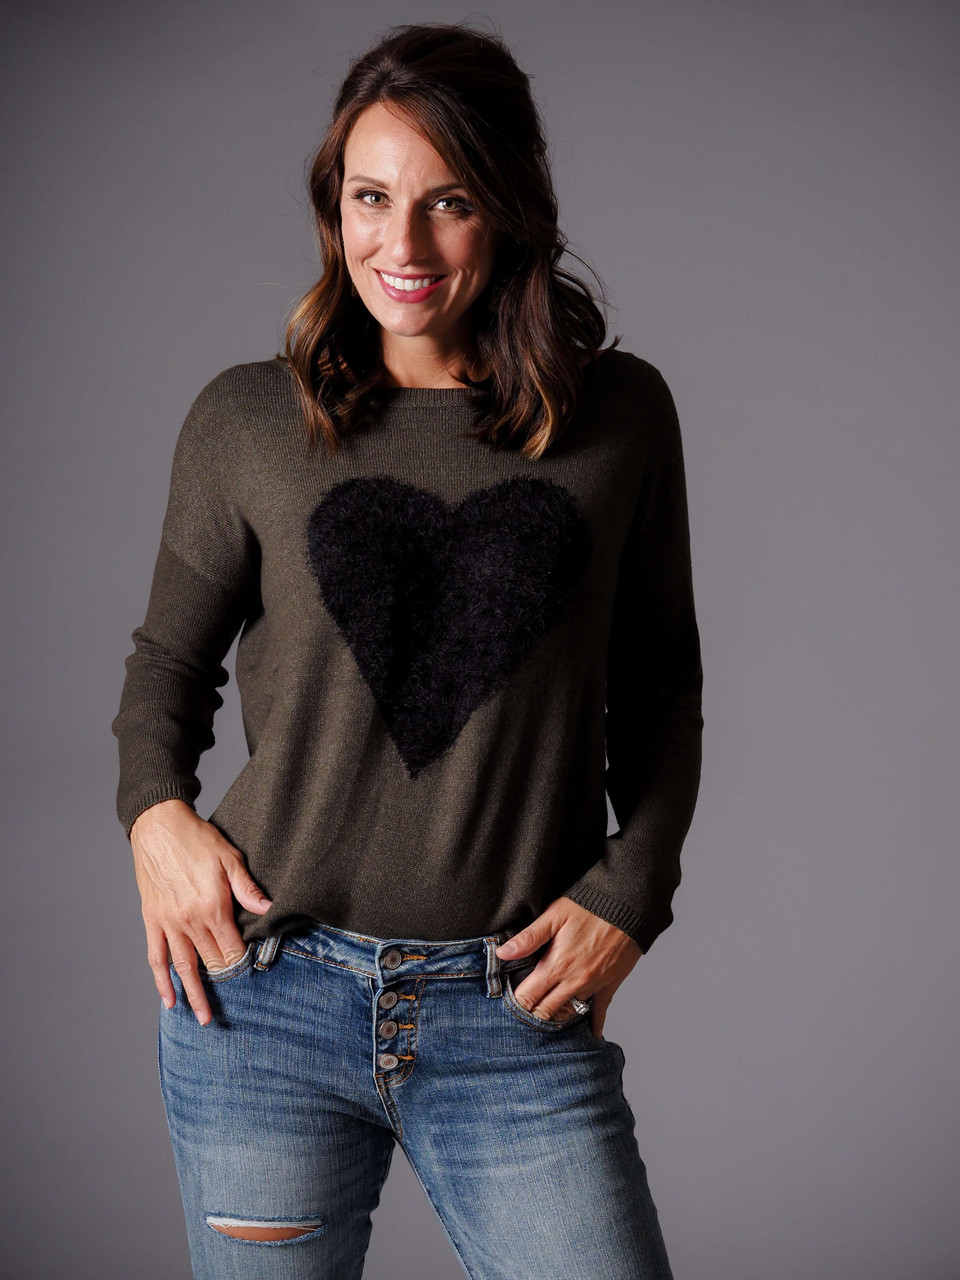 olive green crew neck sweater with black heart pattern